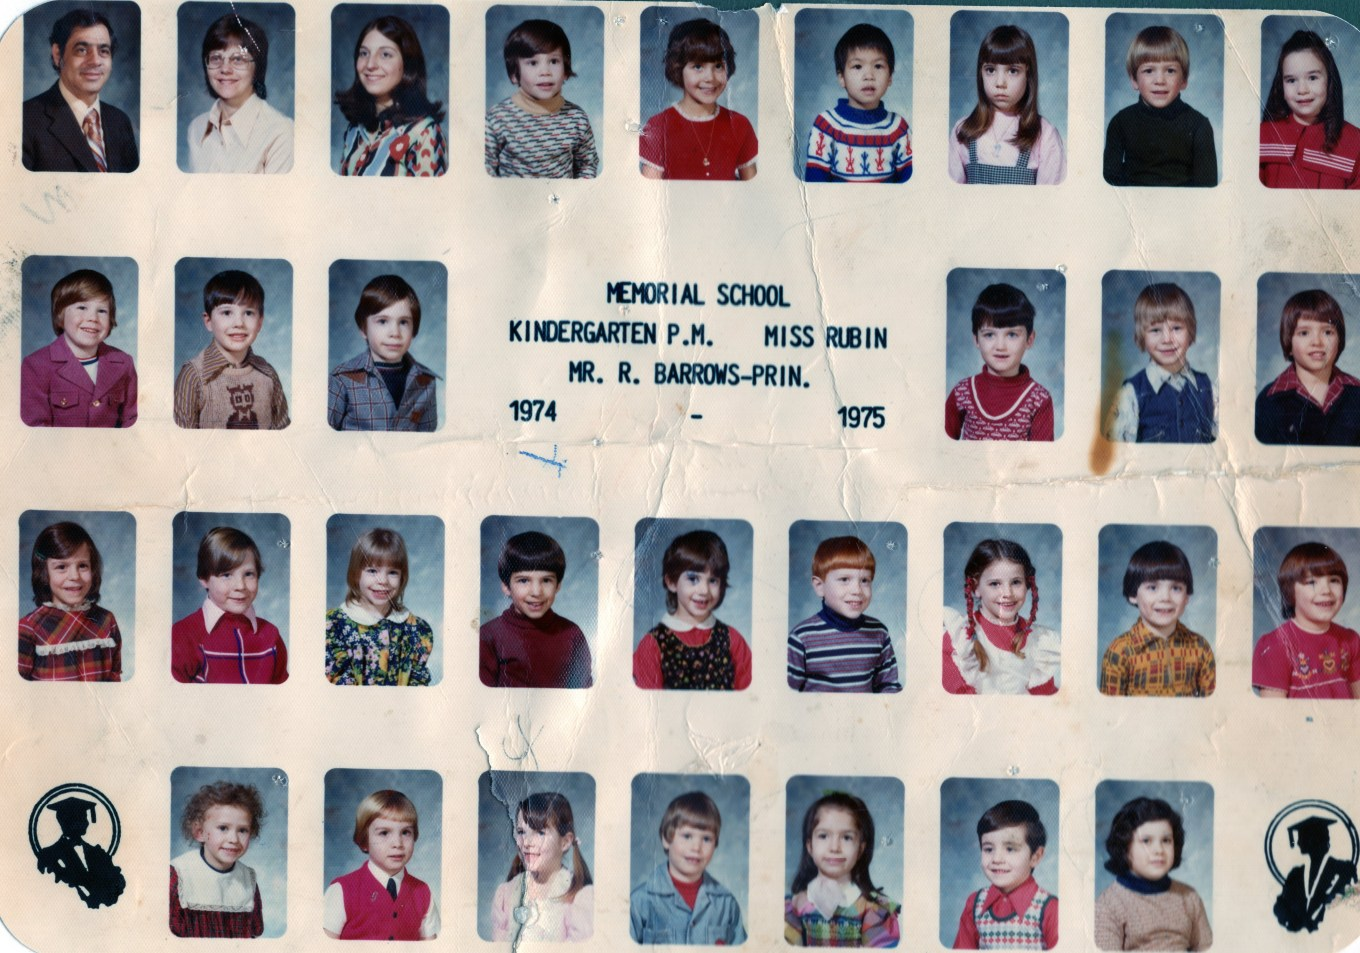 1974 Memorial School Burlington MA Rubin